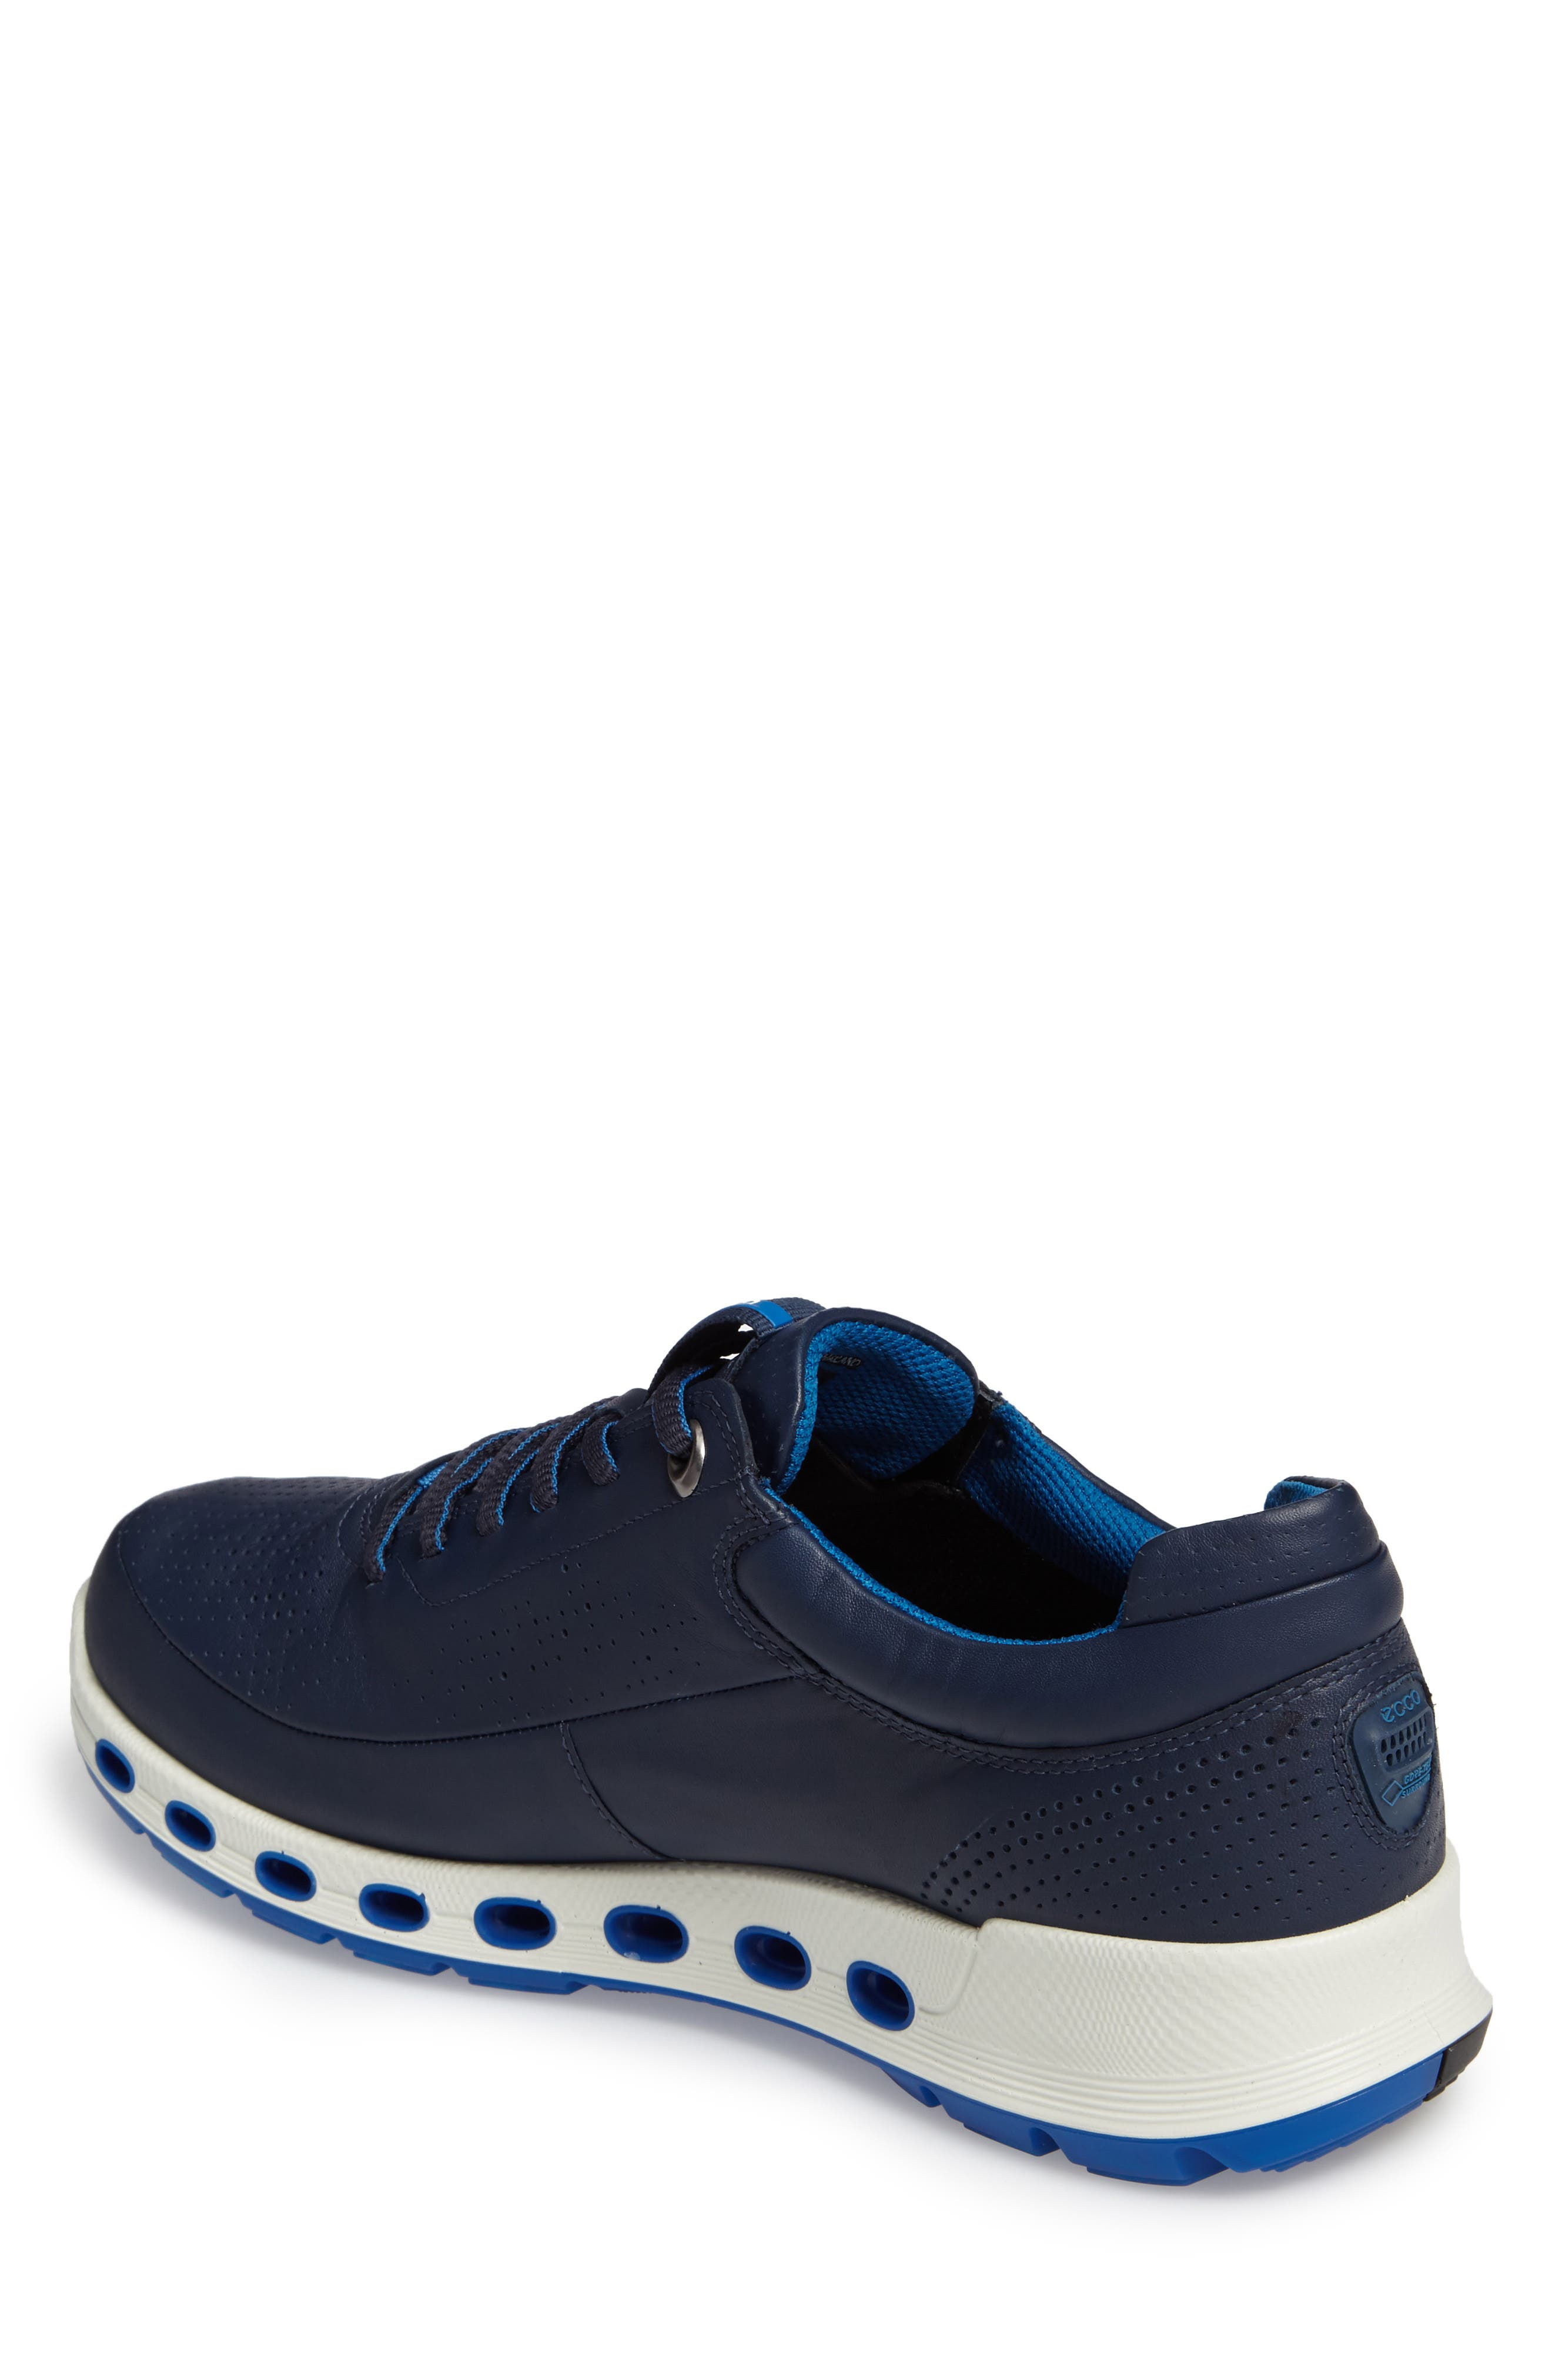 Cool 2.0 Leather GTX Sneaker,                             Alternate thumbnail 2, color,                             NAVY